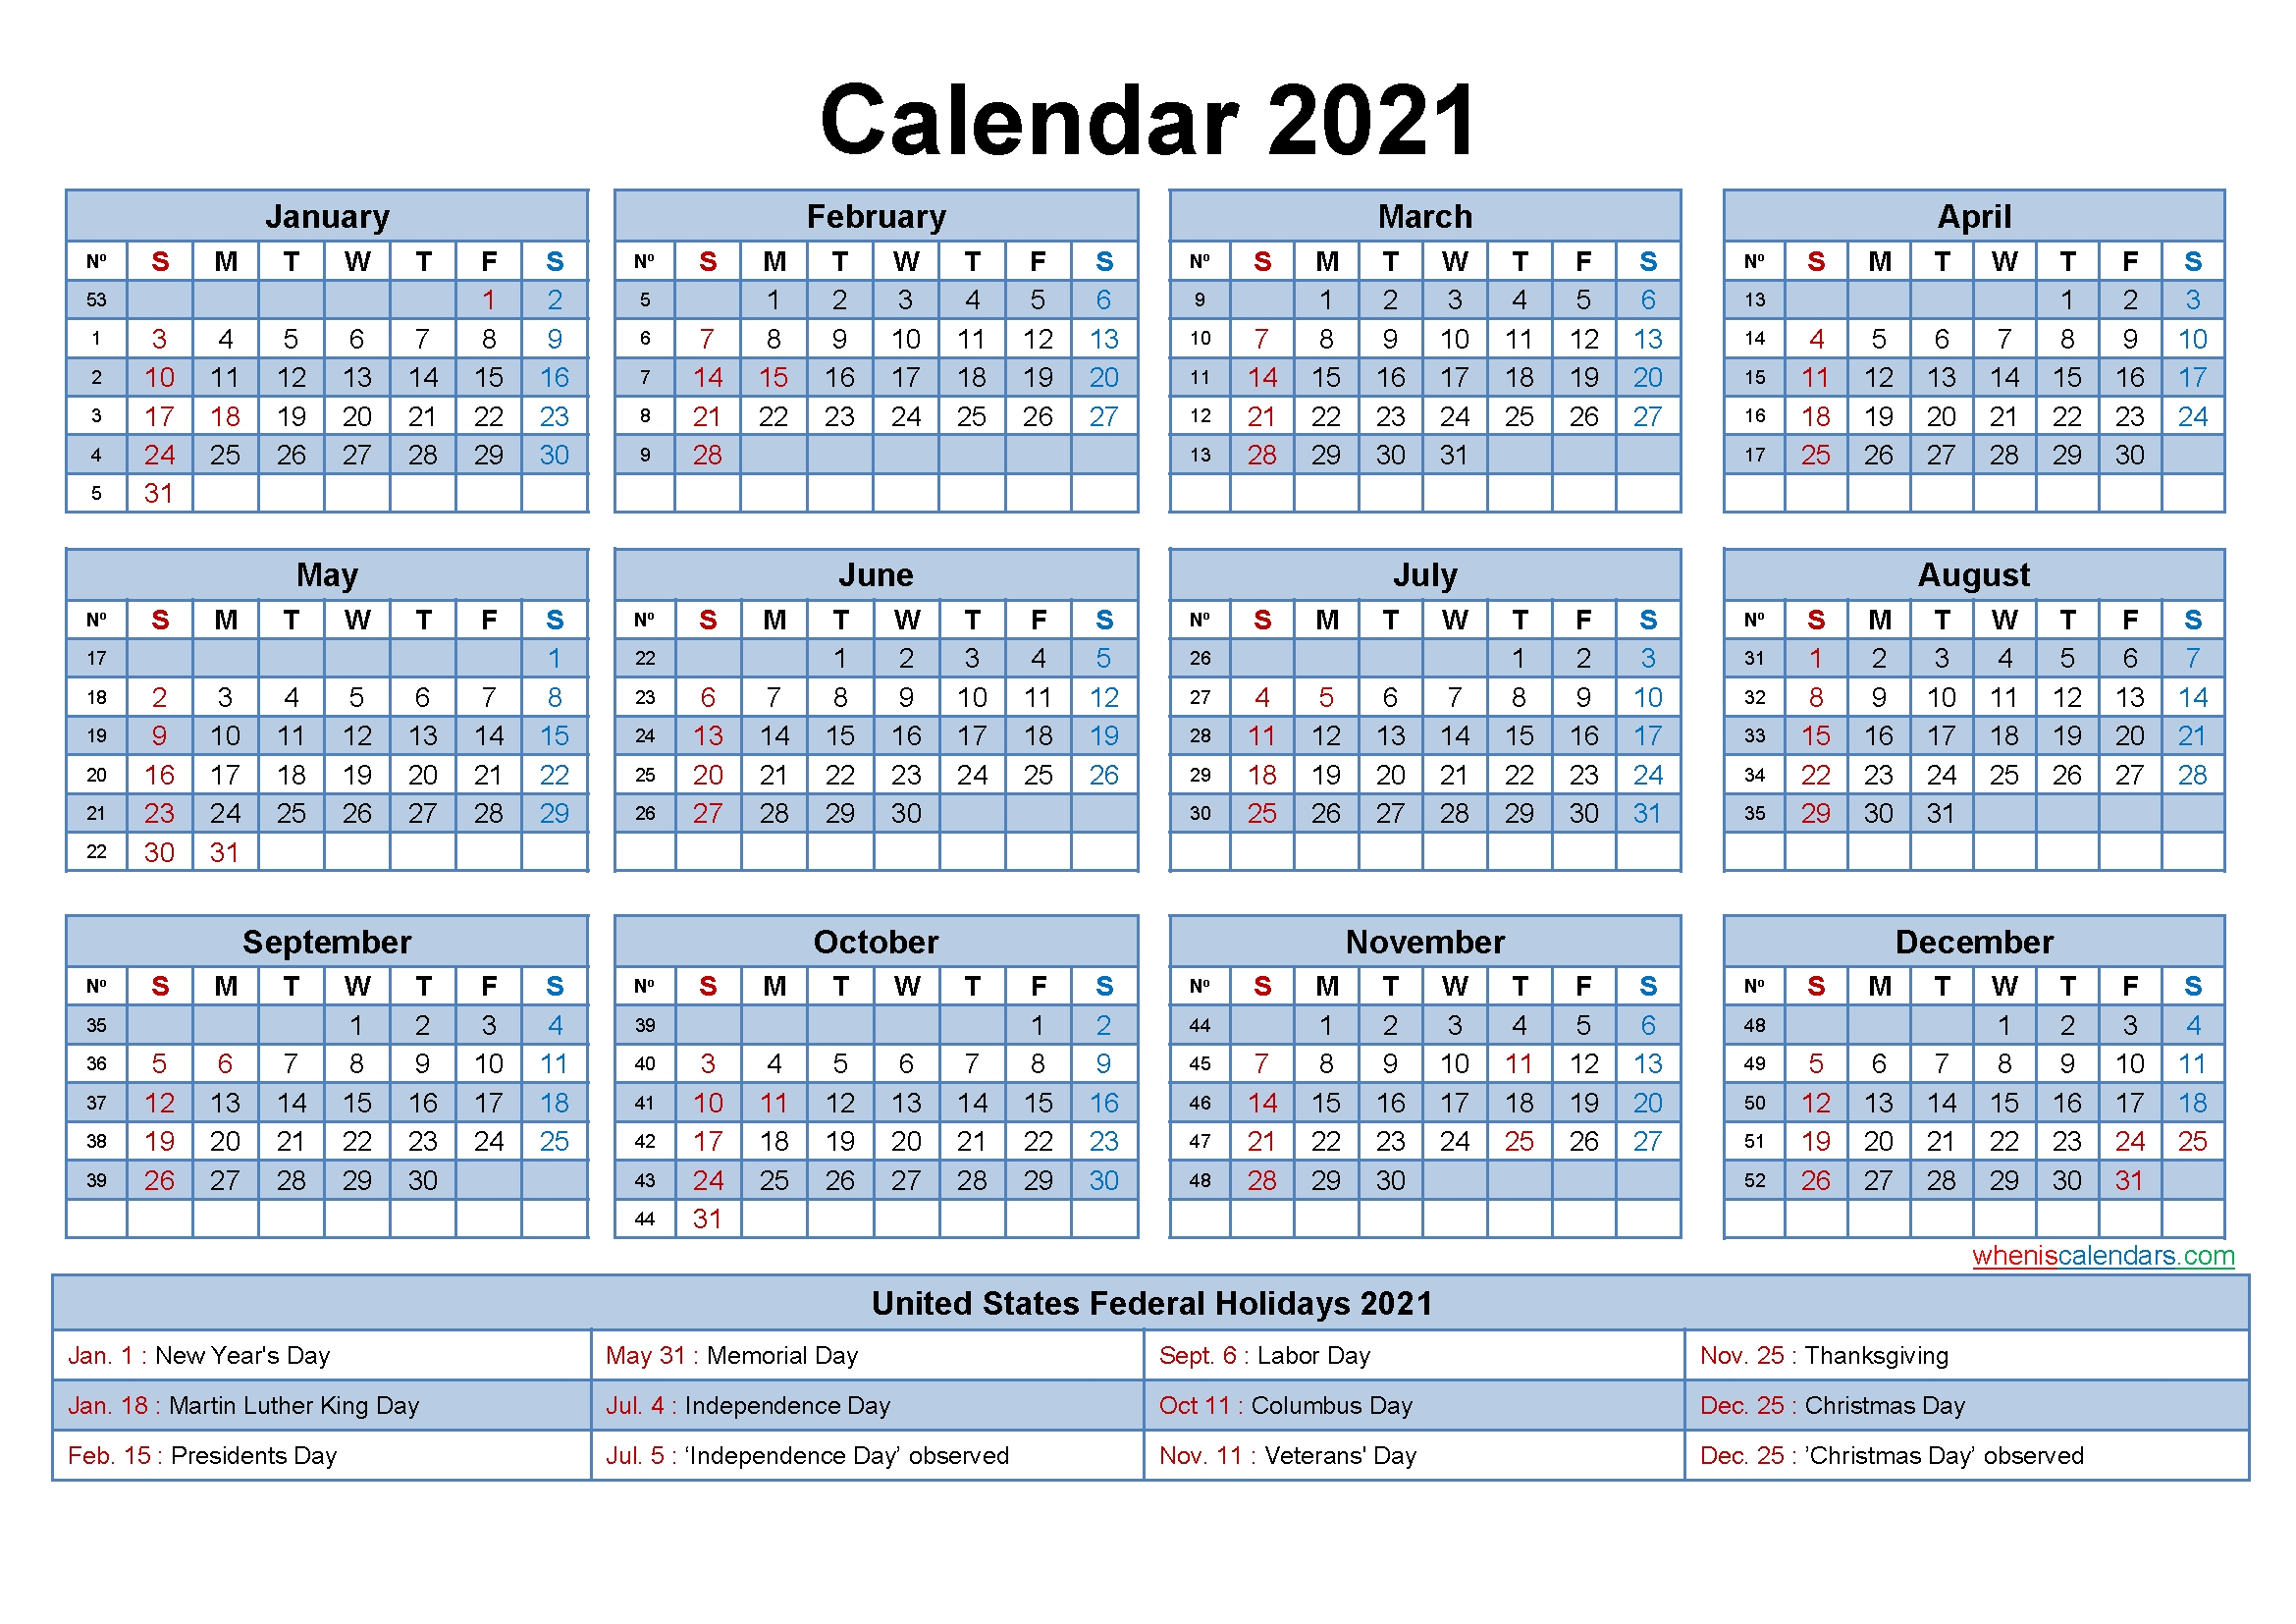 Free 2021 Yearly Calender Template / 12 Month Colorful Calendar For 2021 - Free Printable within 2021 Printable Monthly Calendar